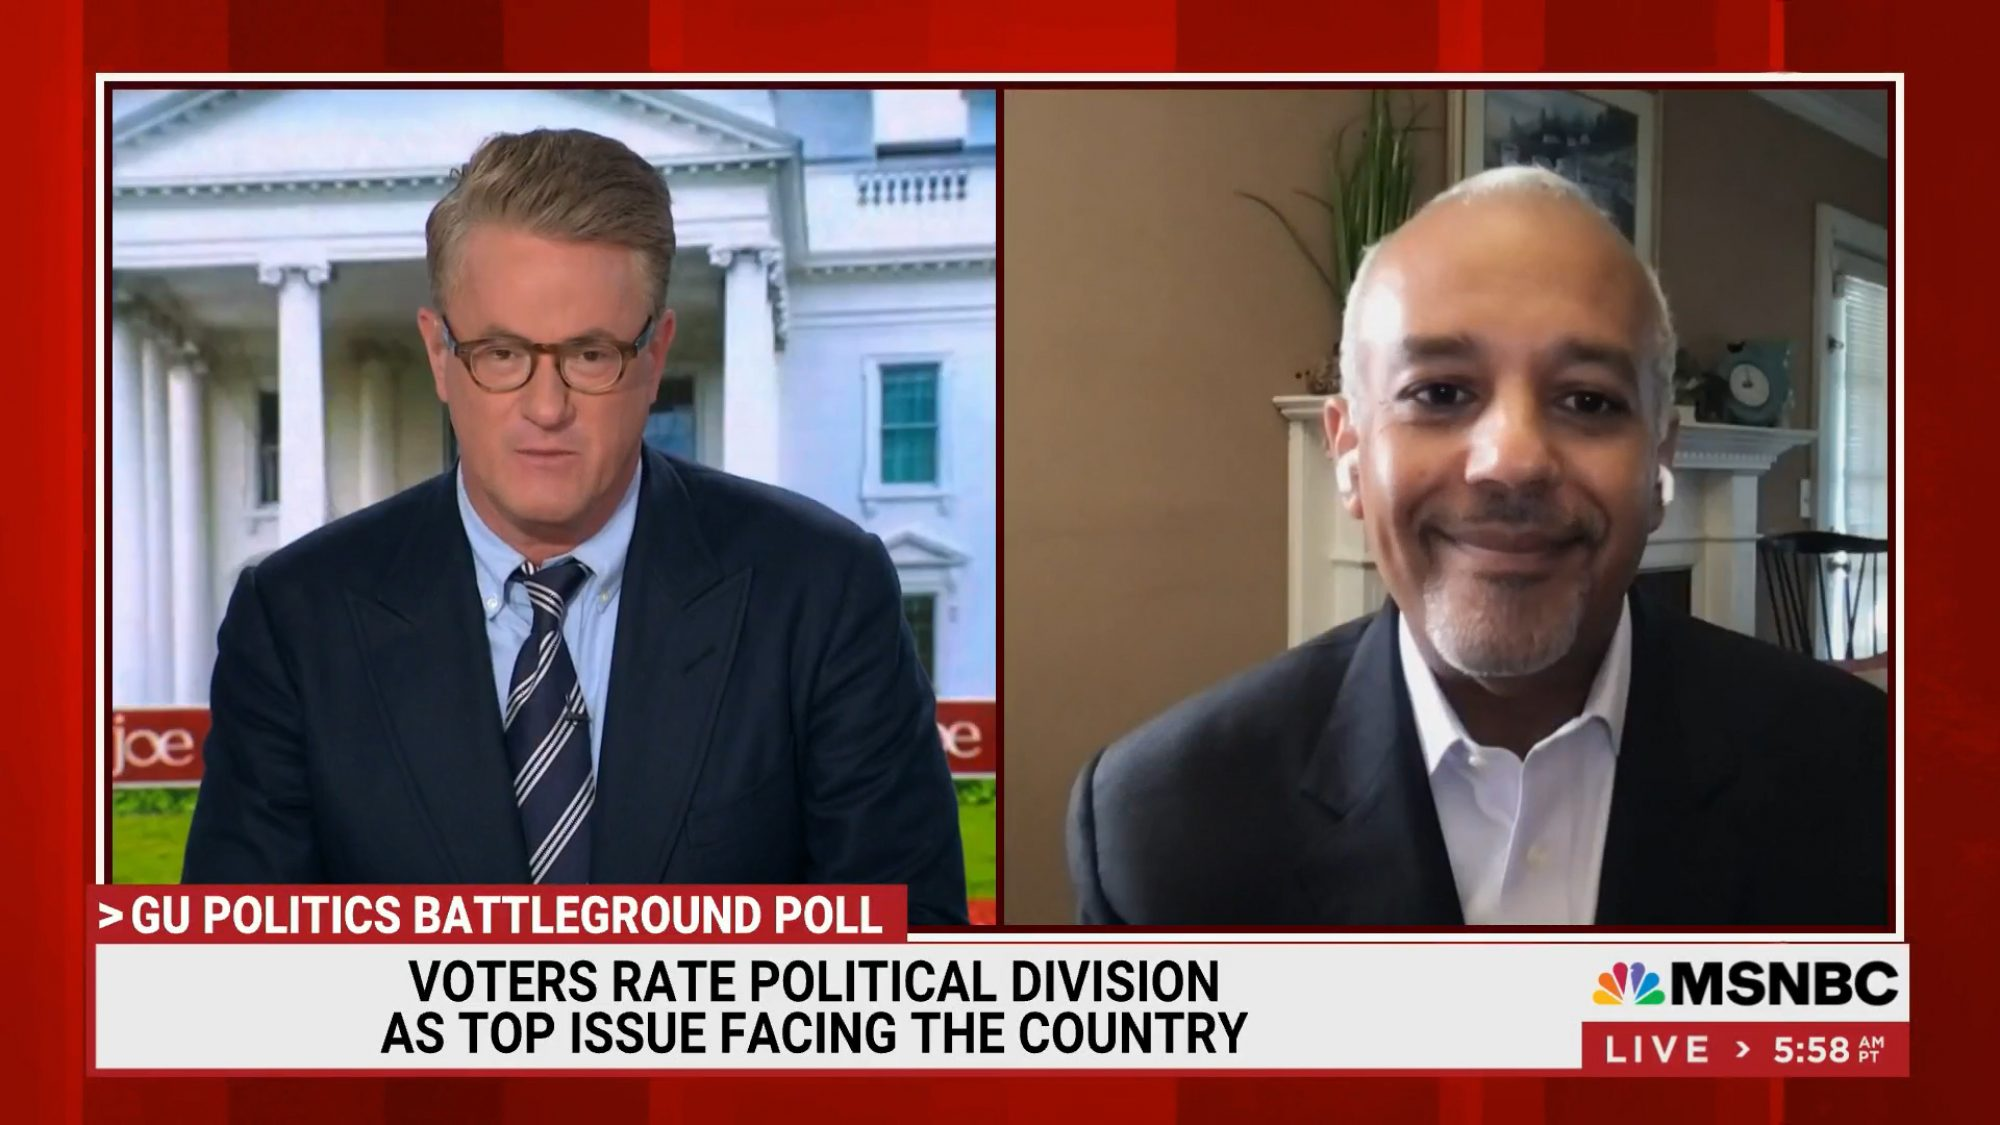 MSNBC Morning Joe: Voters rate political division as the main issue facing the country - Joe Scarborough & Mo Elleithee on screen